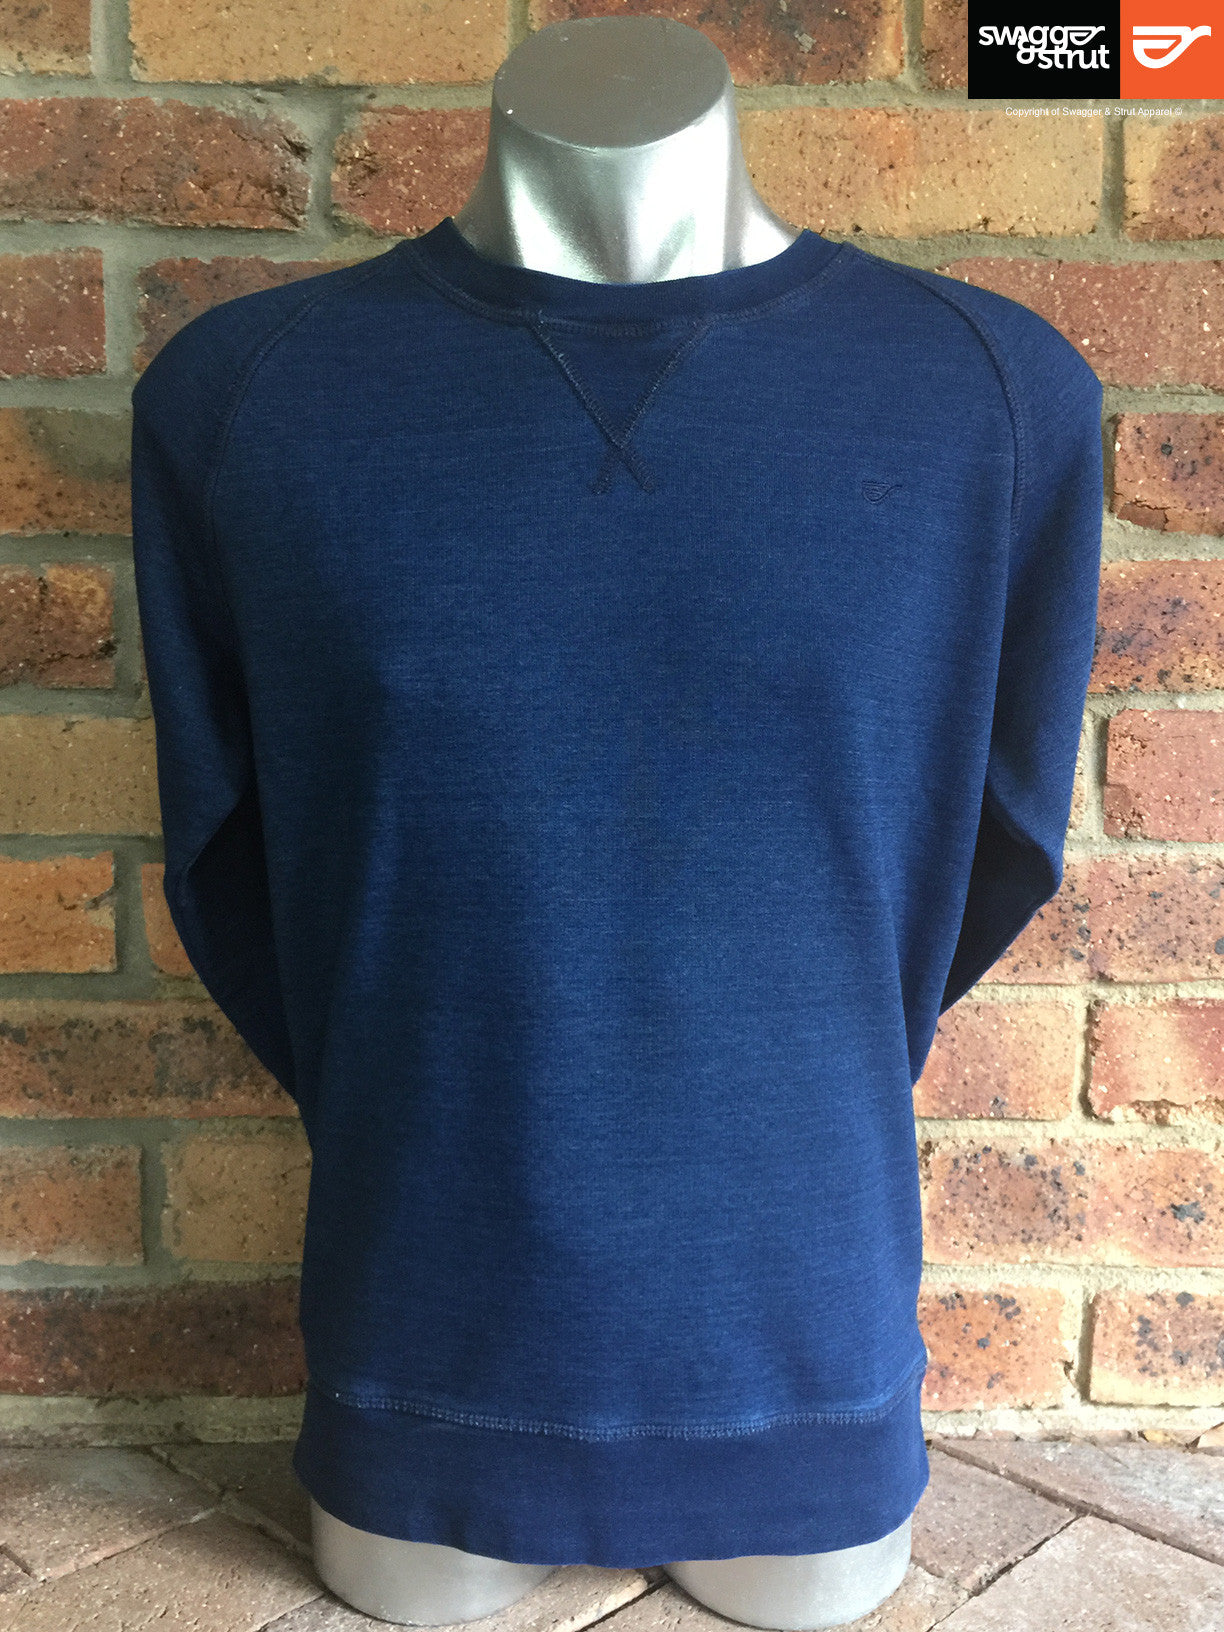 Mid Washed Indigo - Male Organic Denim Crew Neck Sweatshirt